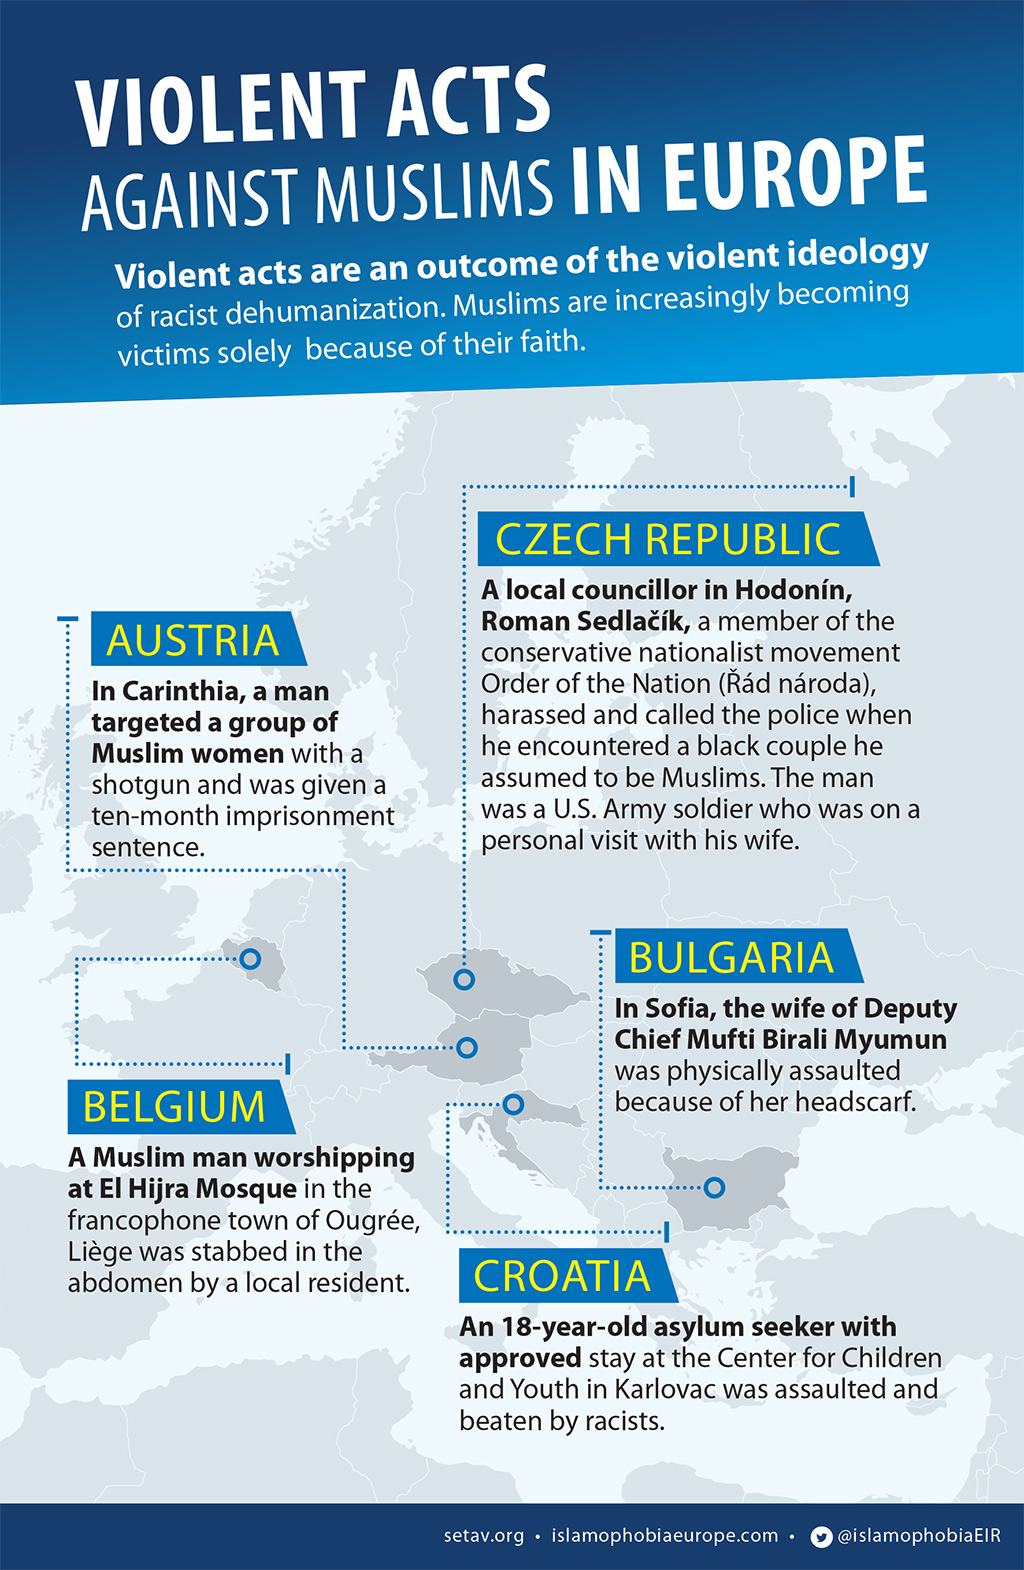 Violent acts against Muslims in Europe